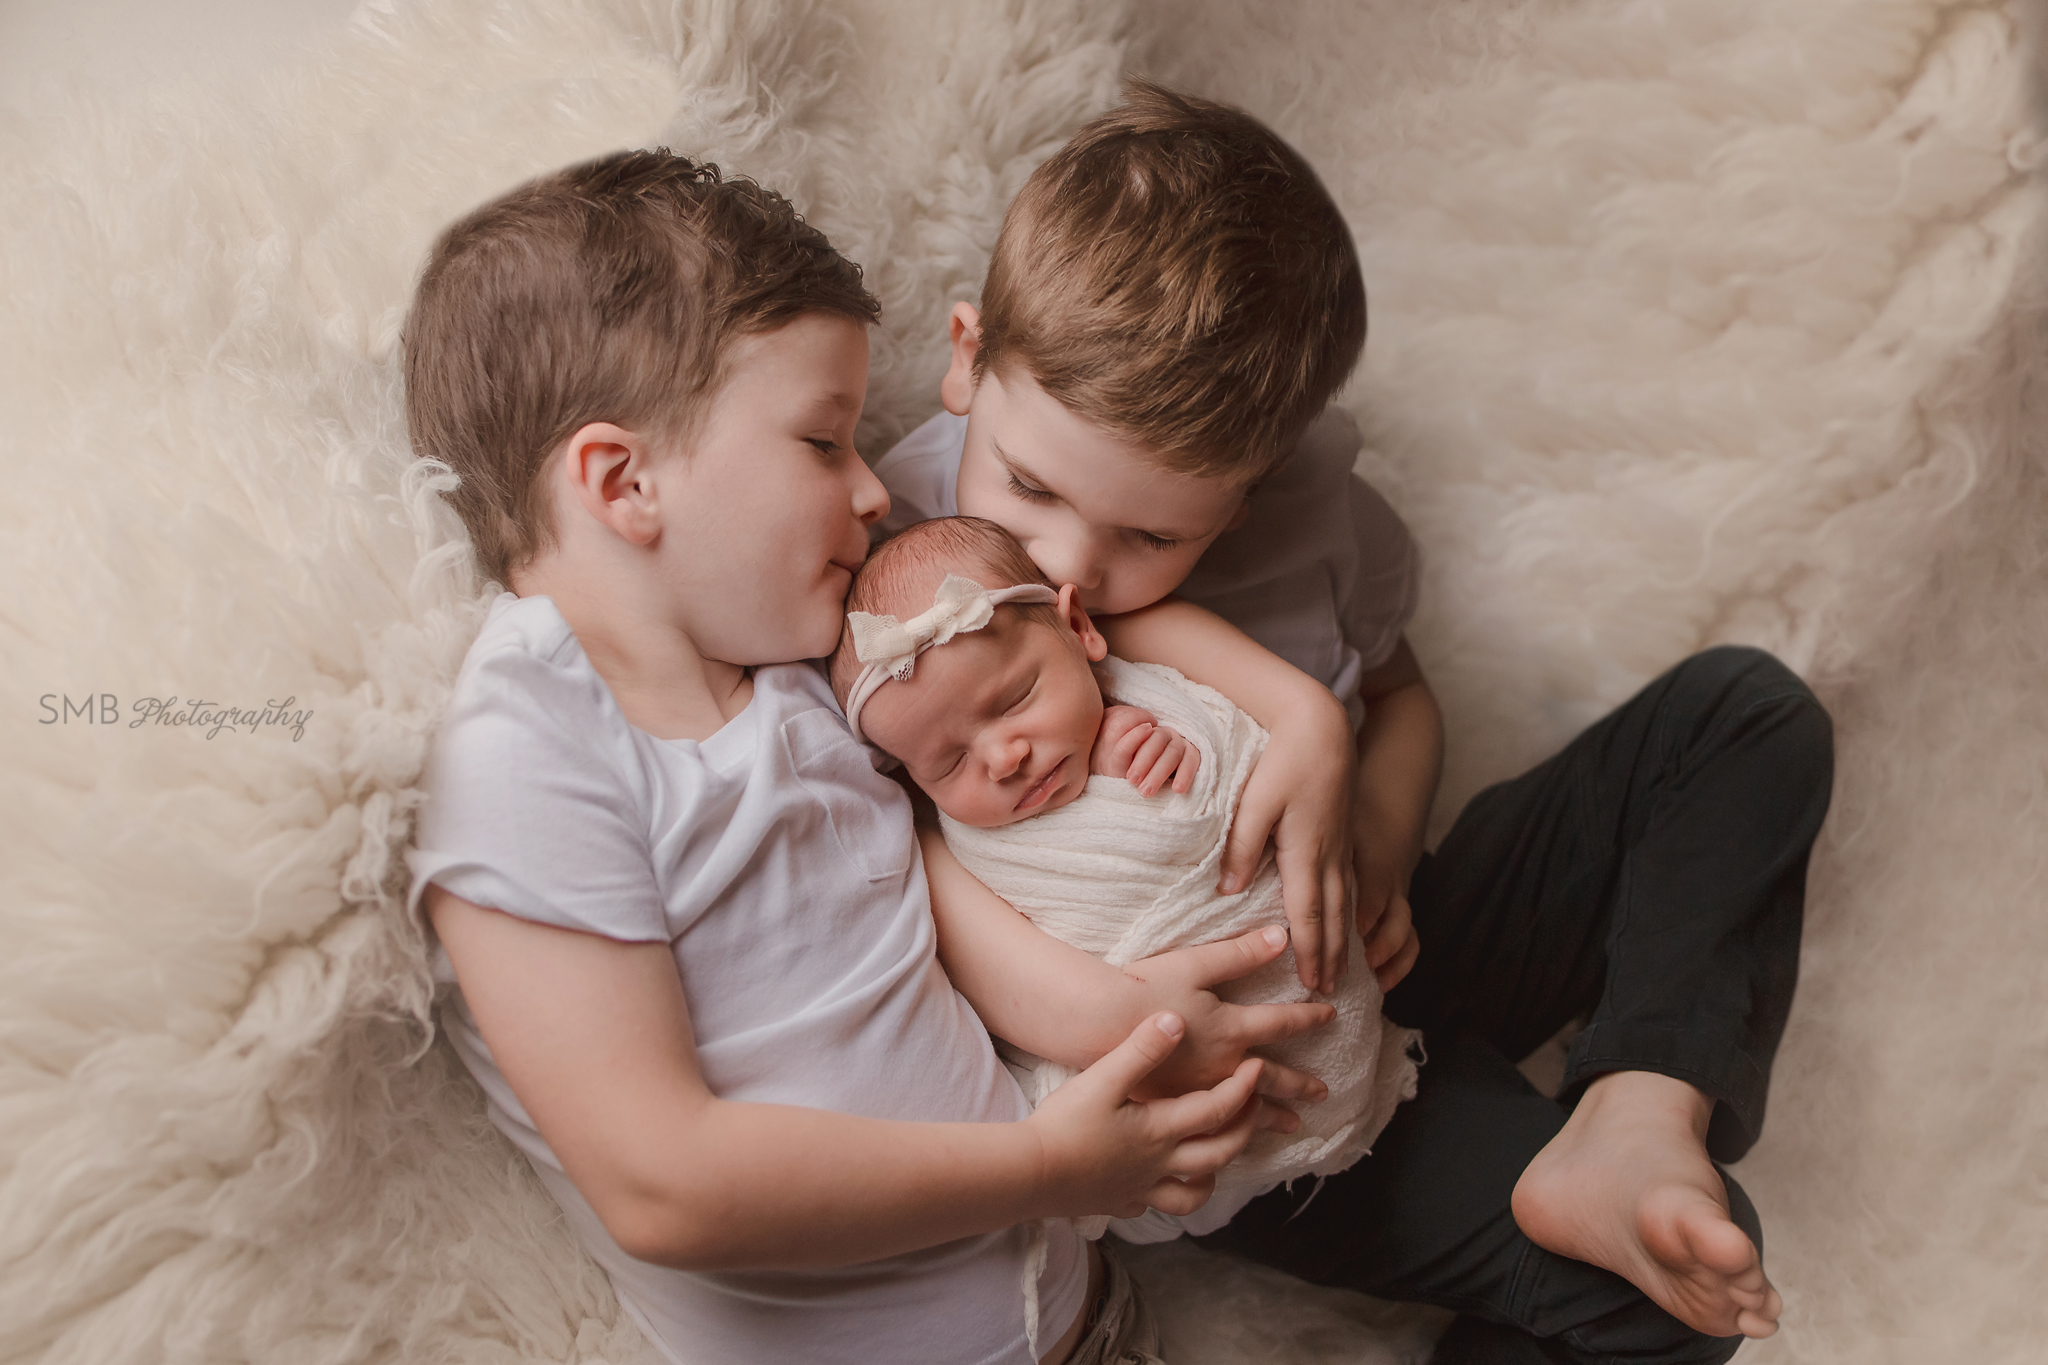 Big brothers kissing baby sister on white flokati